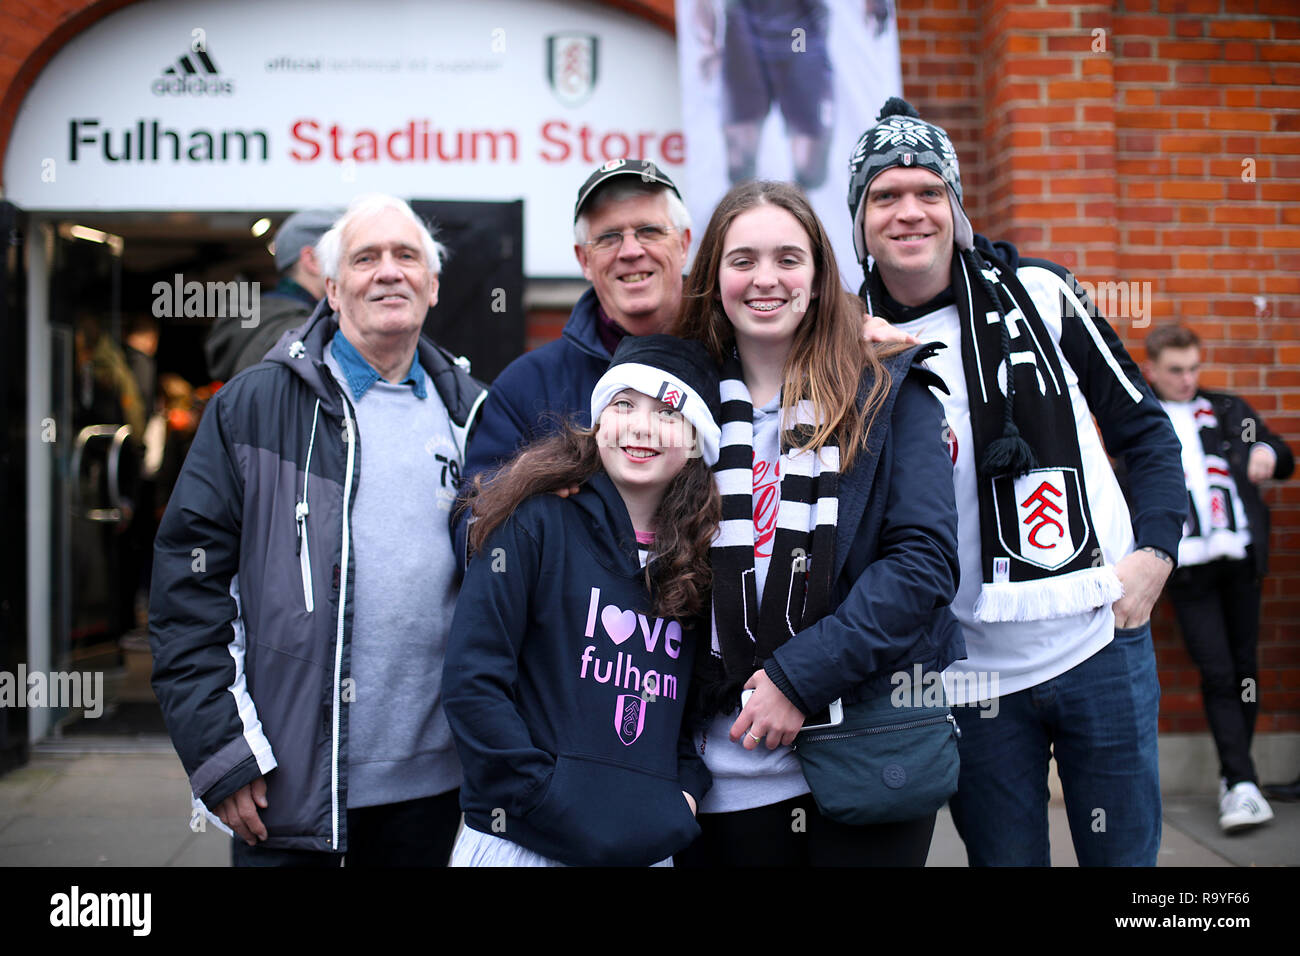 Fulham fans arrive at the ground ahead of the Premier League match at Craven Cottage, London. - Stock Image